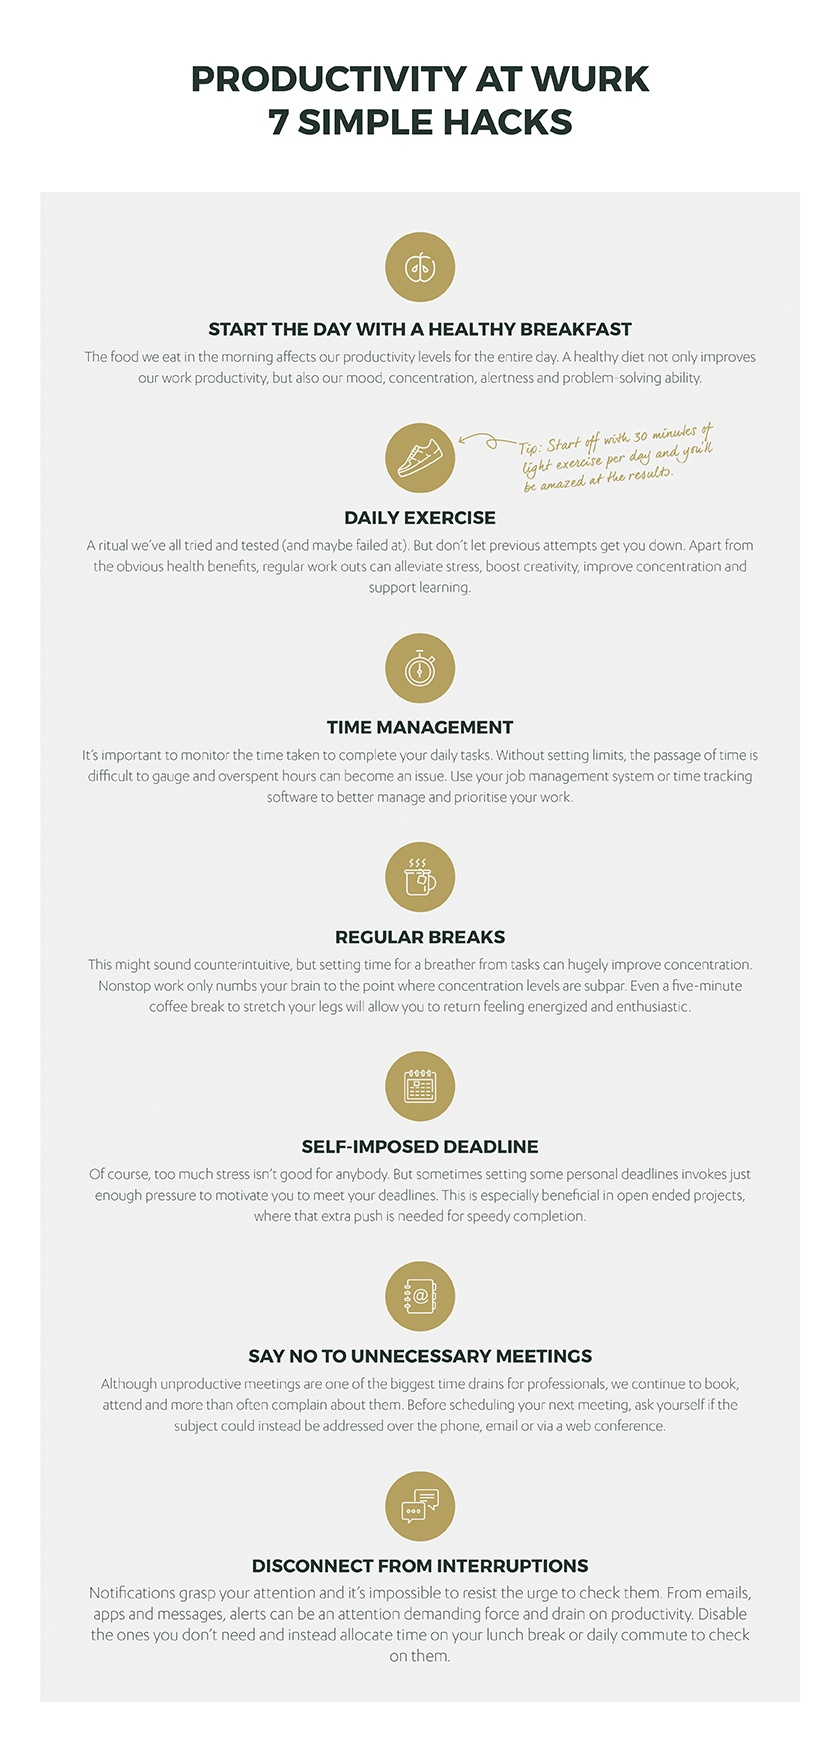 5899_Wurkhouse_Music&Productivity_Infographics_Productivity.jpg